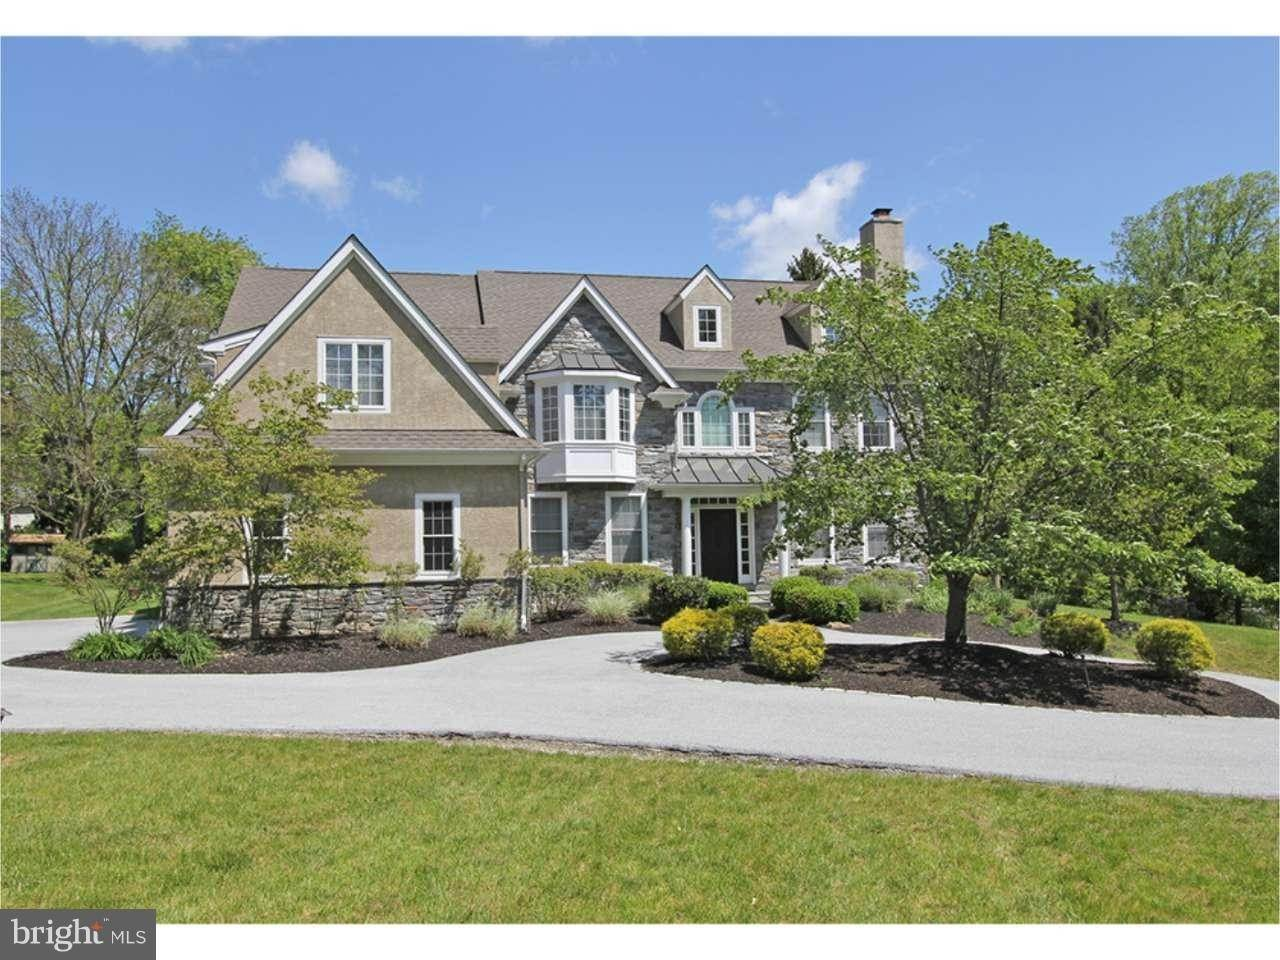 Detached House for Sale at 3415 GOSHEN Road Newtown Square, Pennsylvania 19073 United States